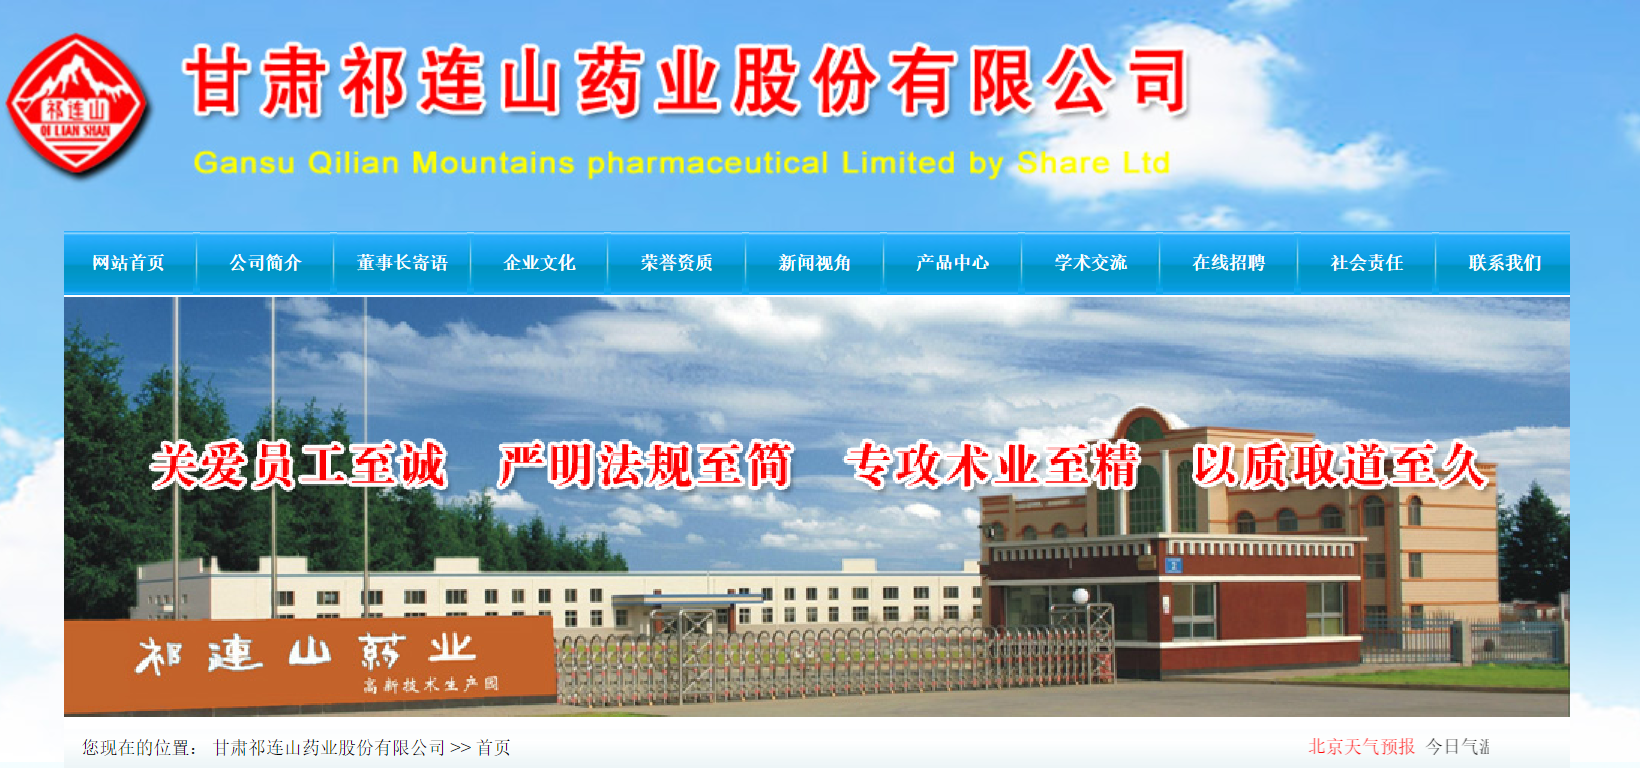 ANALYSIS: Qilian International Seeks U.S. Public Capital in $24 Million IPO